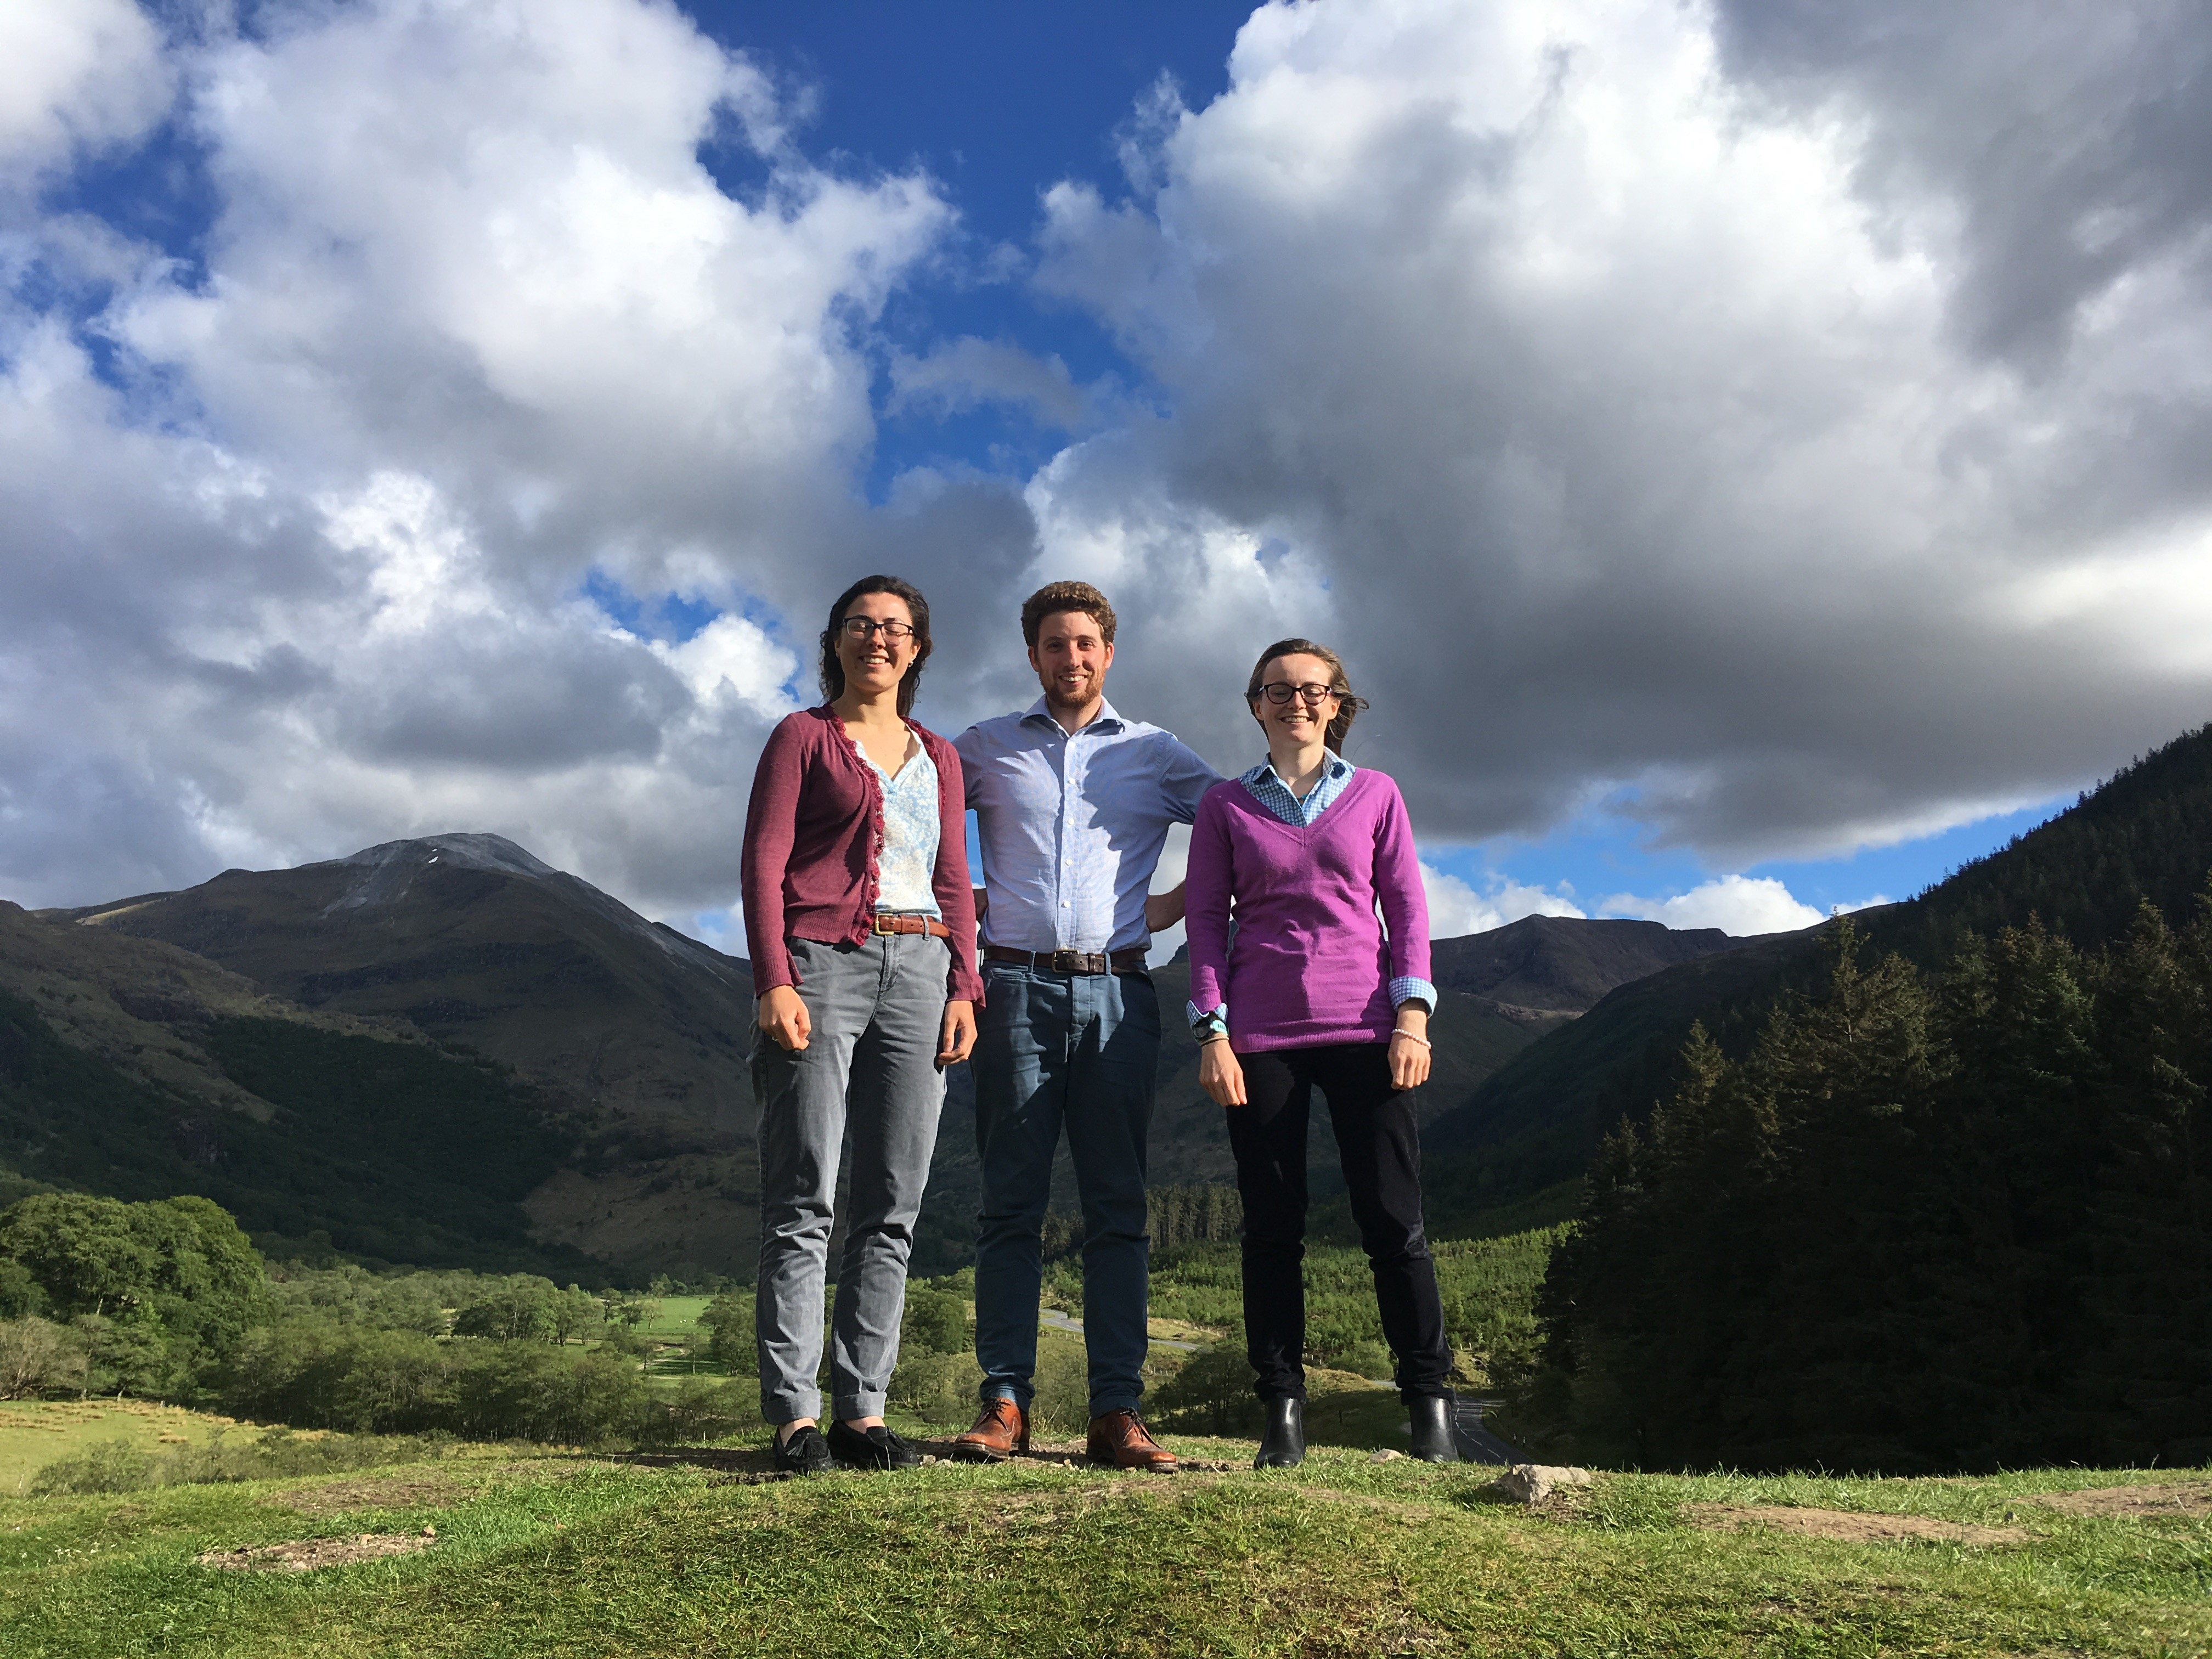 Pictured with part of the Tranter's Round ridgeline in the background are three of the ambitious team (from left) Penny Coles, Calum Hogg ad Heledd Rheinallt.